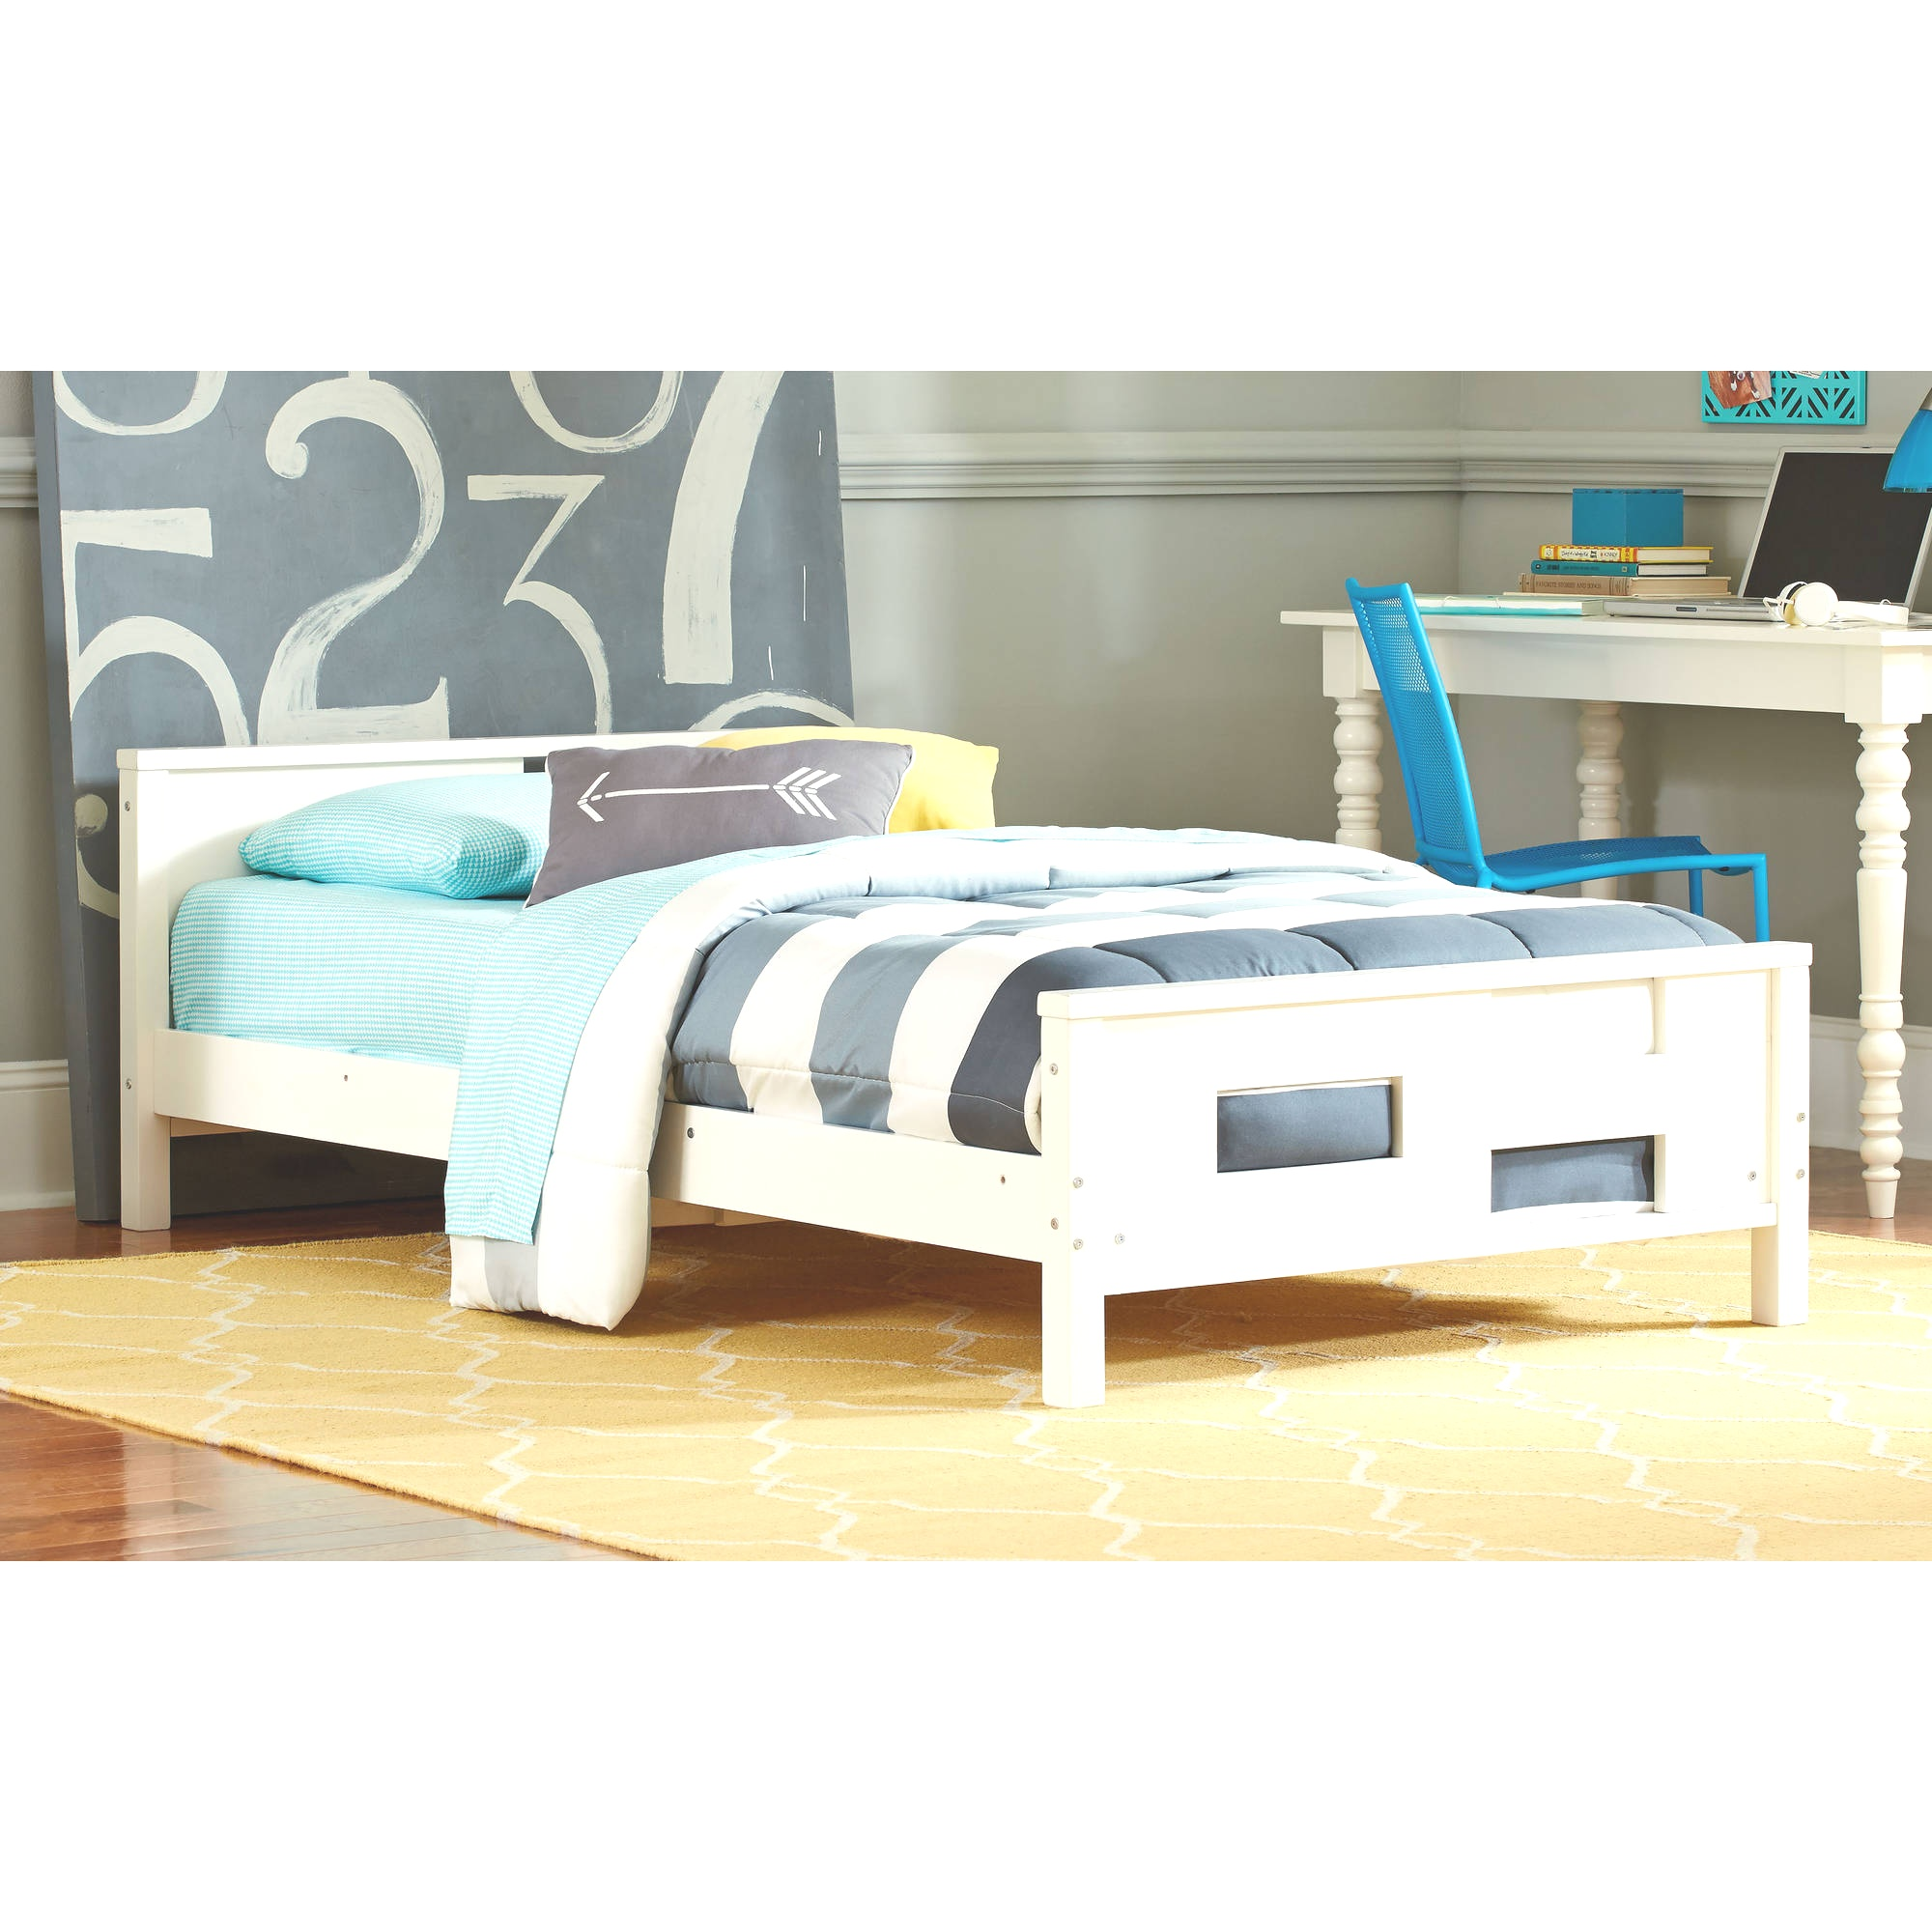 twin bed toddler bedding photo - 3